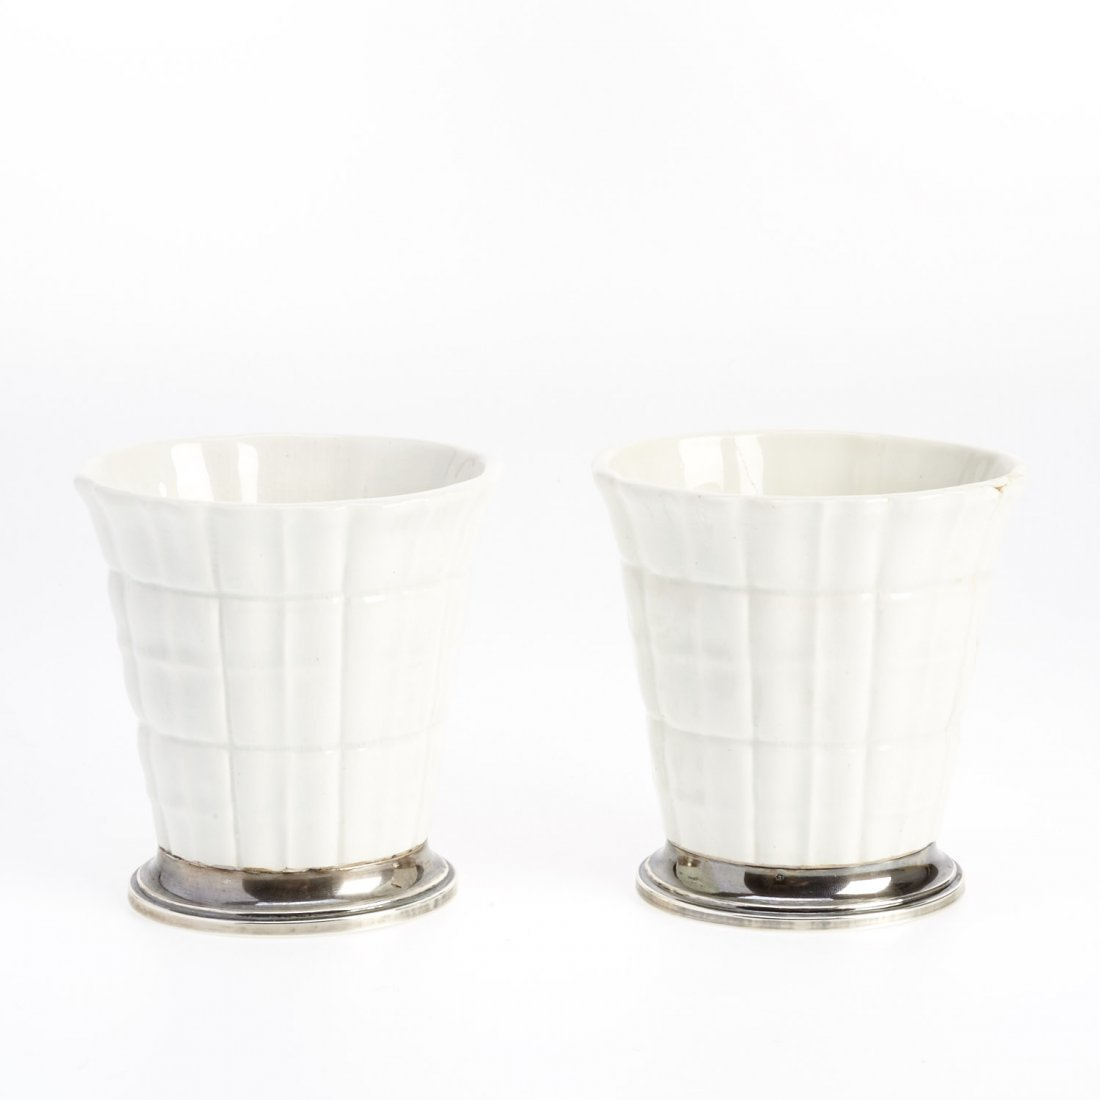 Pair Gio Ponti silver mounted ceramic vases